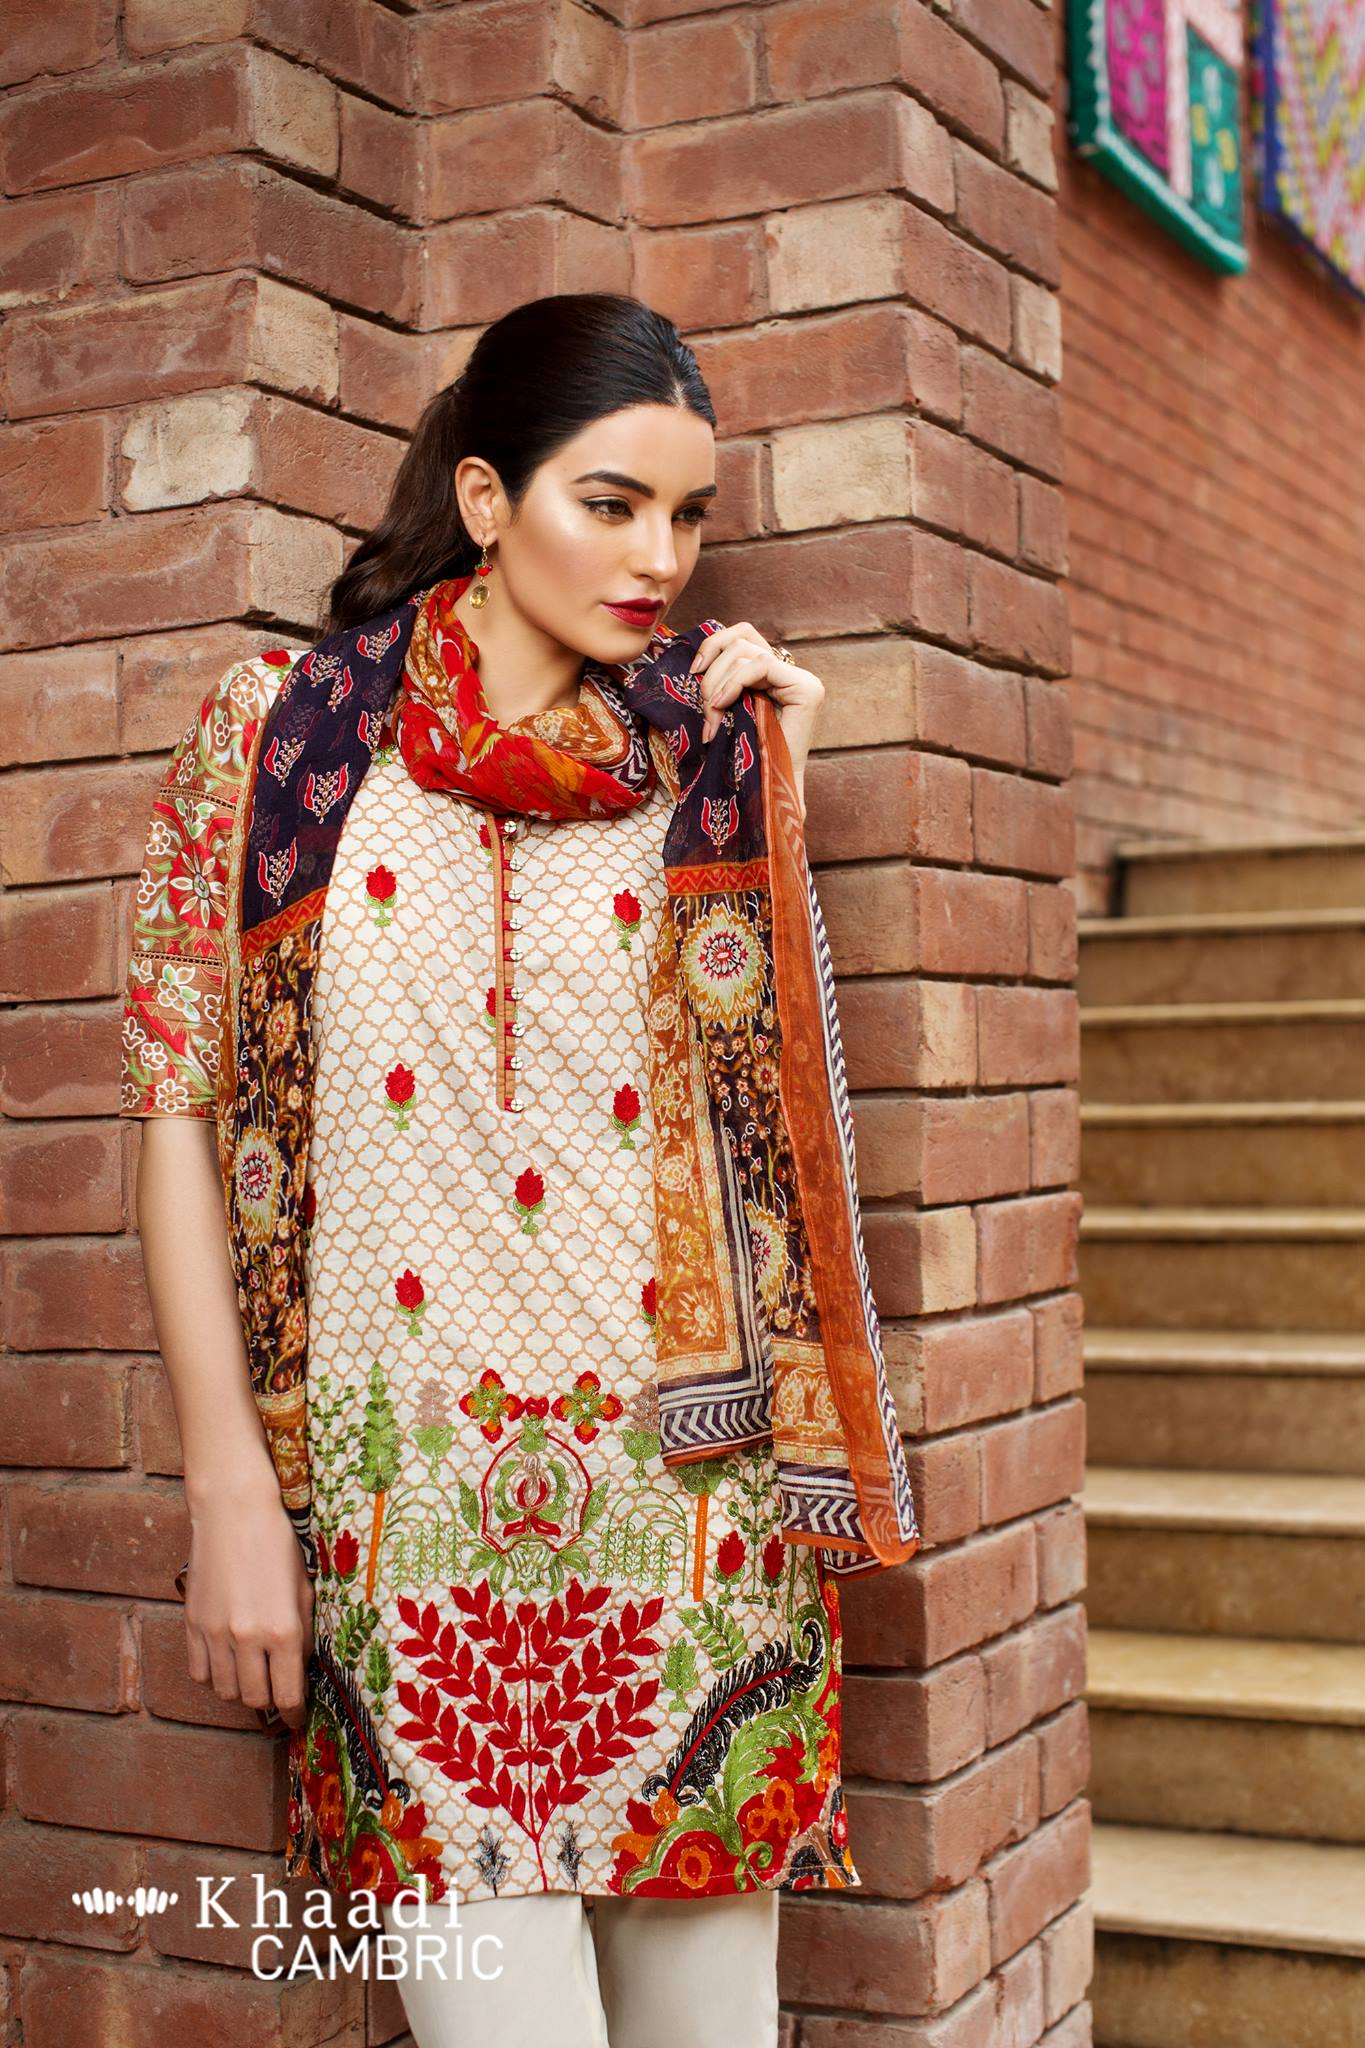 Khaadi Unstitched Cambric Collection: Price and Catalog